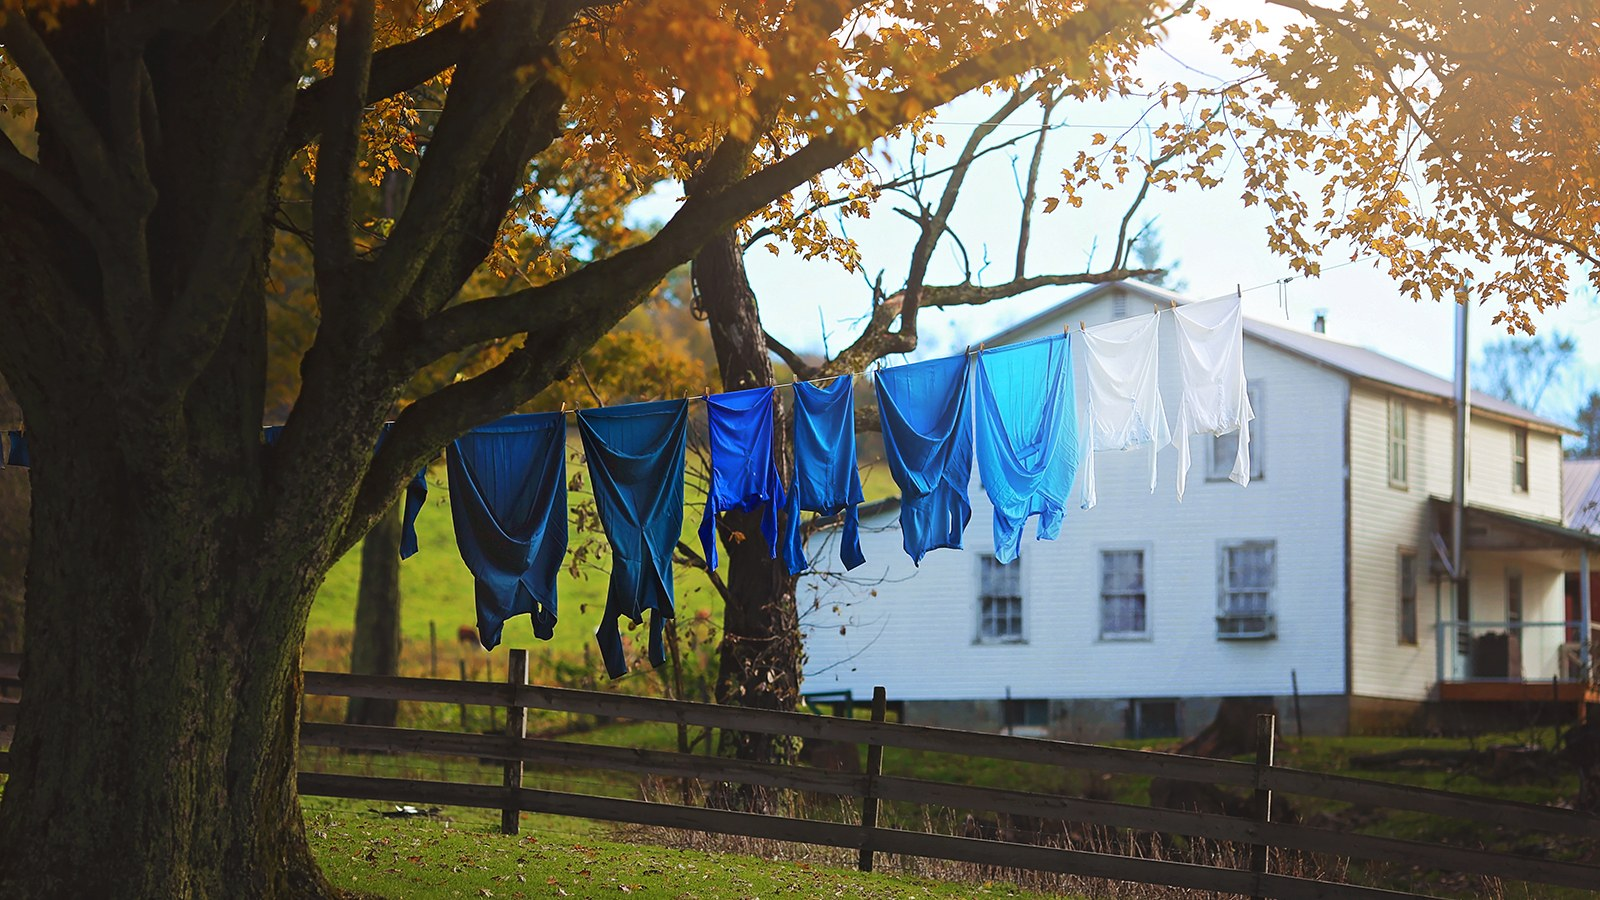 Clothes Drying in the Autumn Breeze